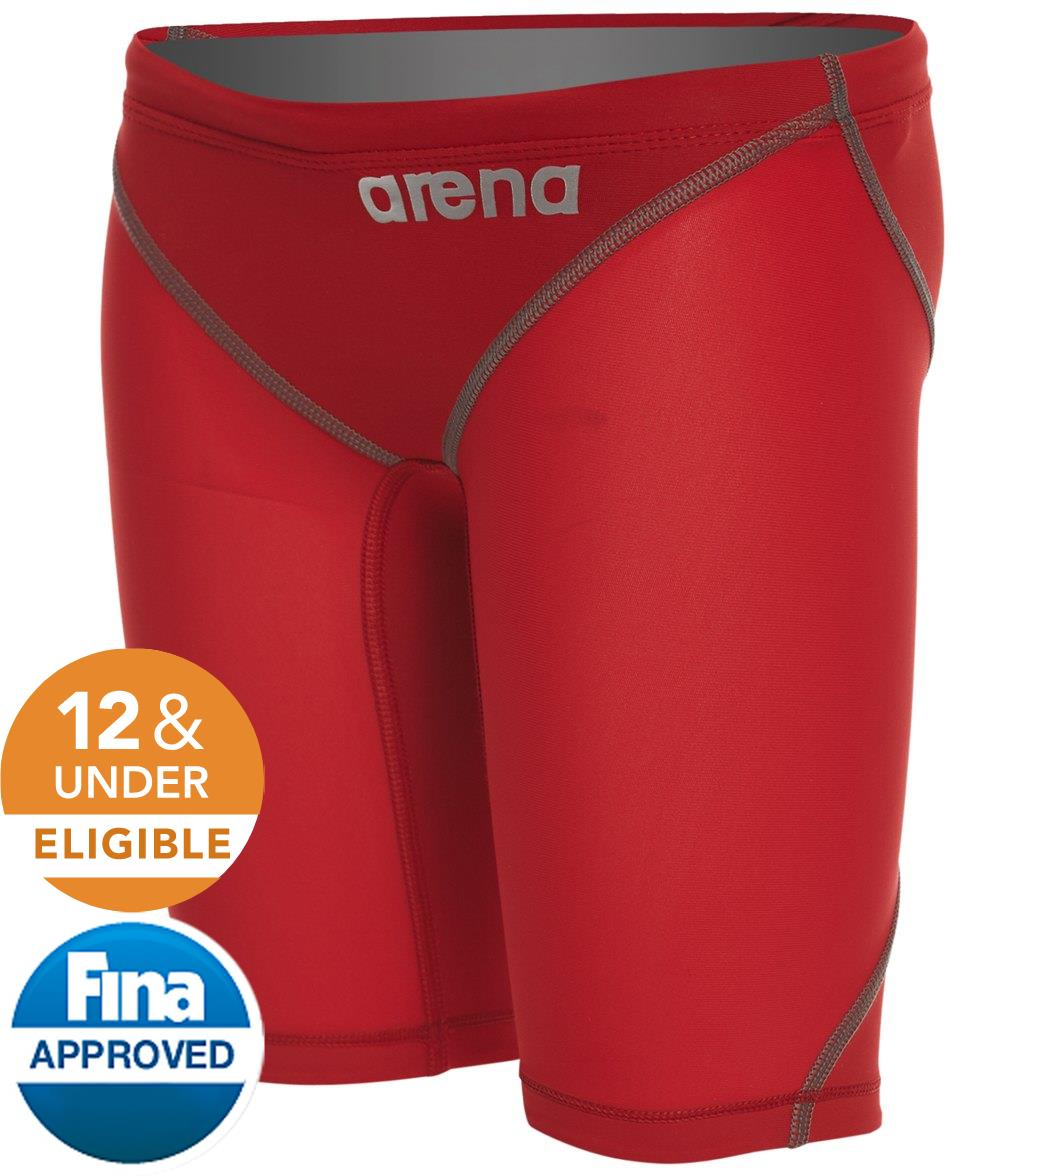 7a8d7b9db2 Arena Boys' Powerskin ST 2.0 Jammer Tech Suit Swimsuit at SwimOutlet.com -  Free Shipping